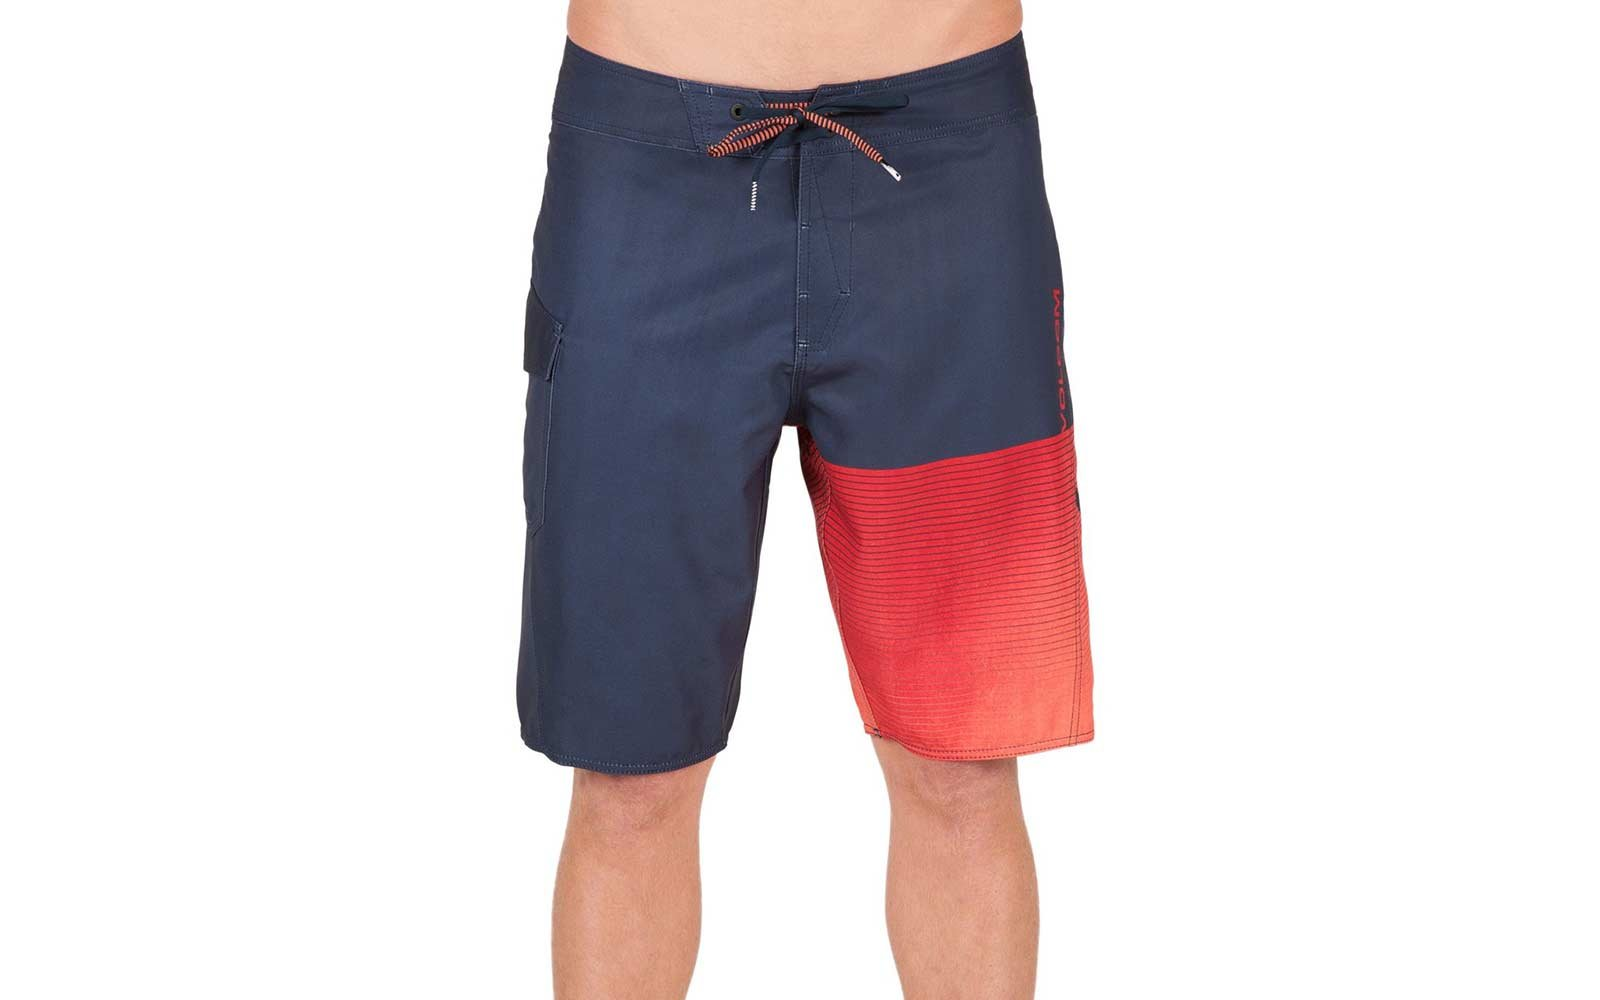 2a4c2c4dd76 Volcom Costa Stone Board Shorts. The Best Mens Swimsuits for Spring Break